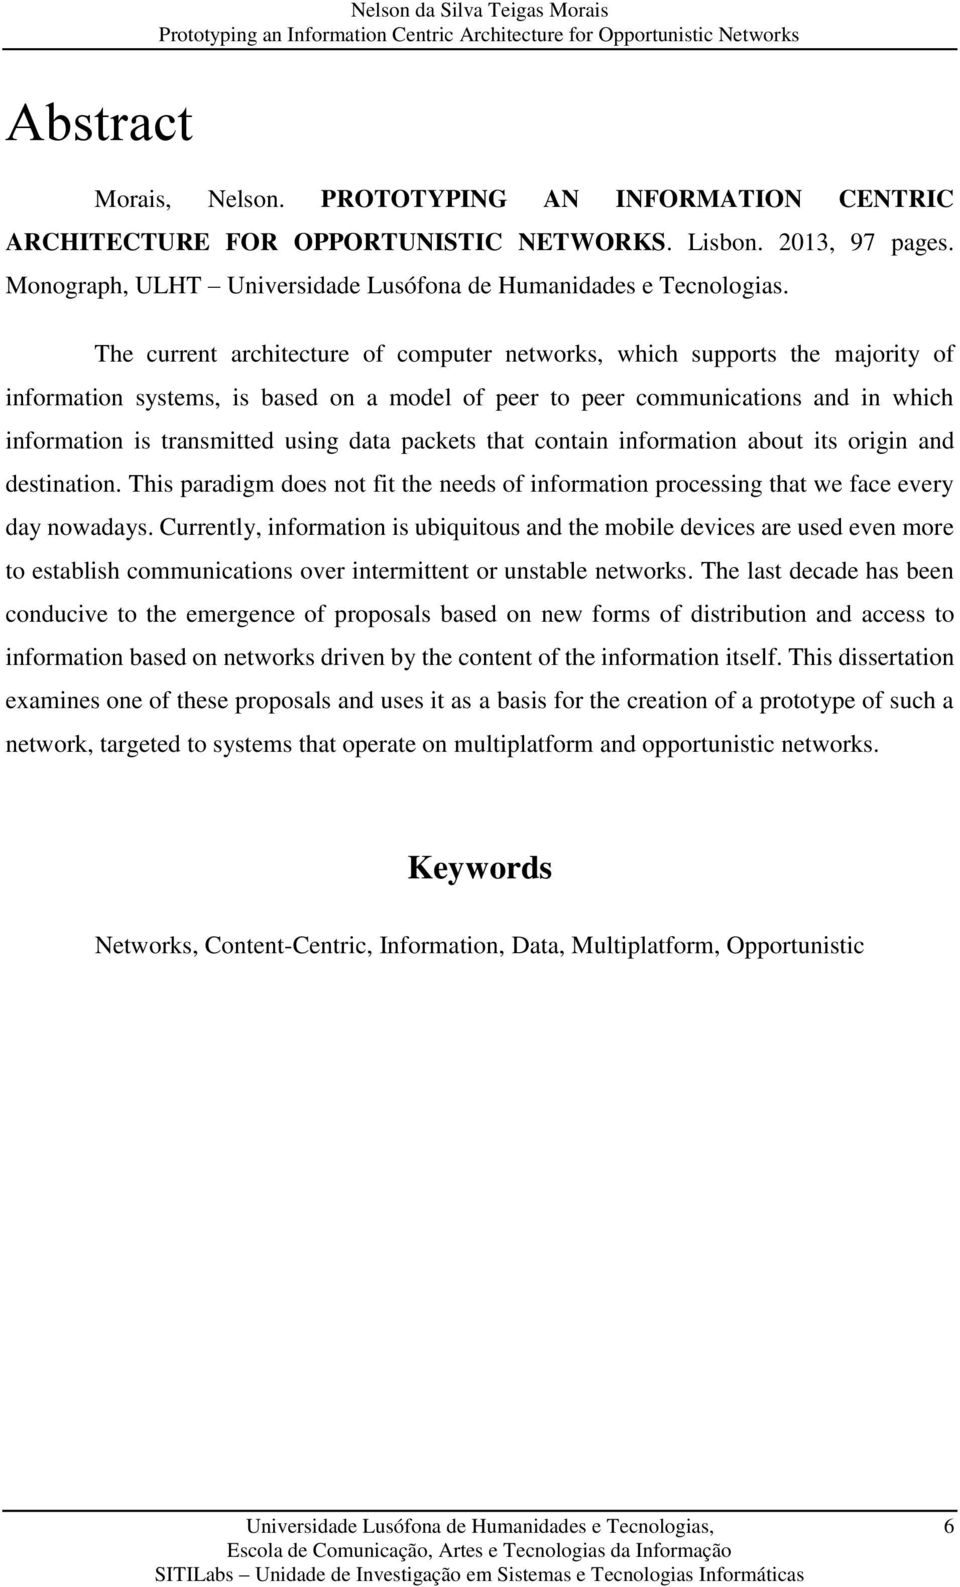 The current architecture of computer networks, which supports the majority of information systems, is based on a model of peer to peer communications and in which information is transmitted using